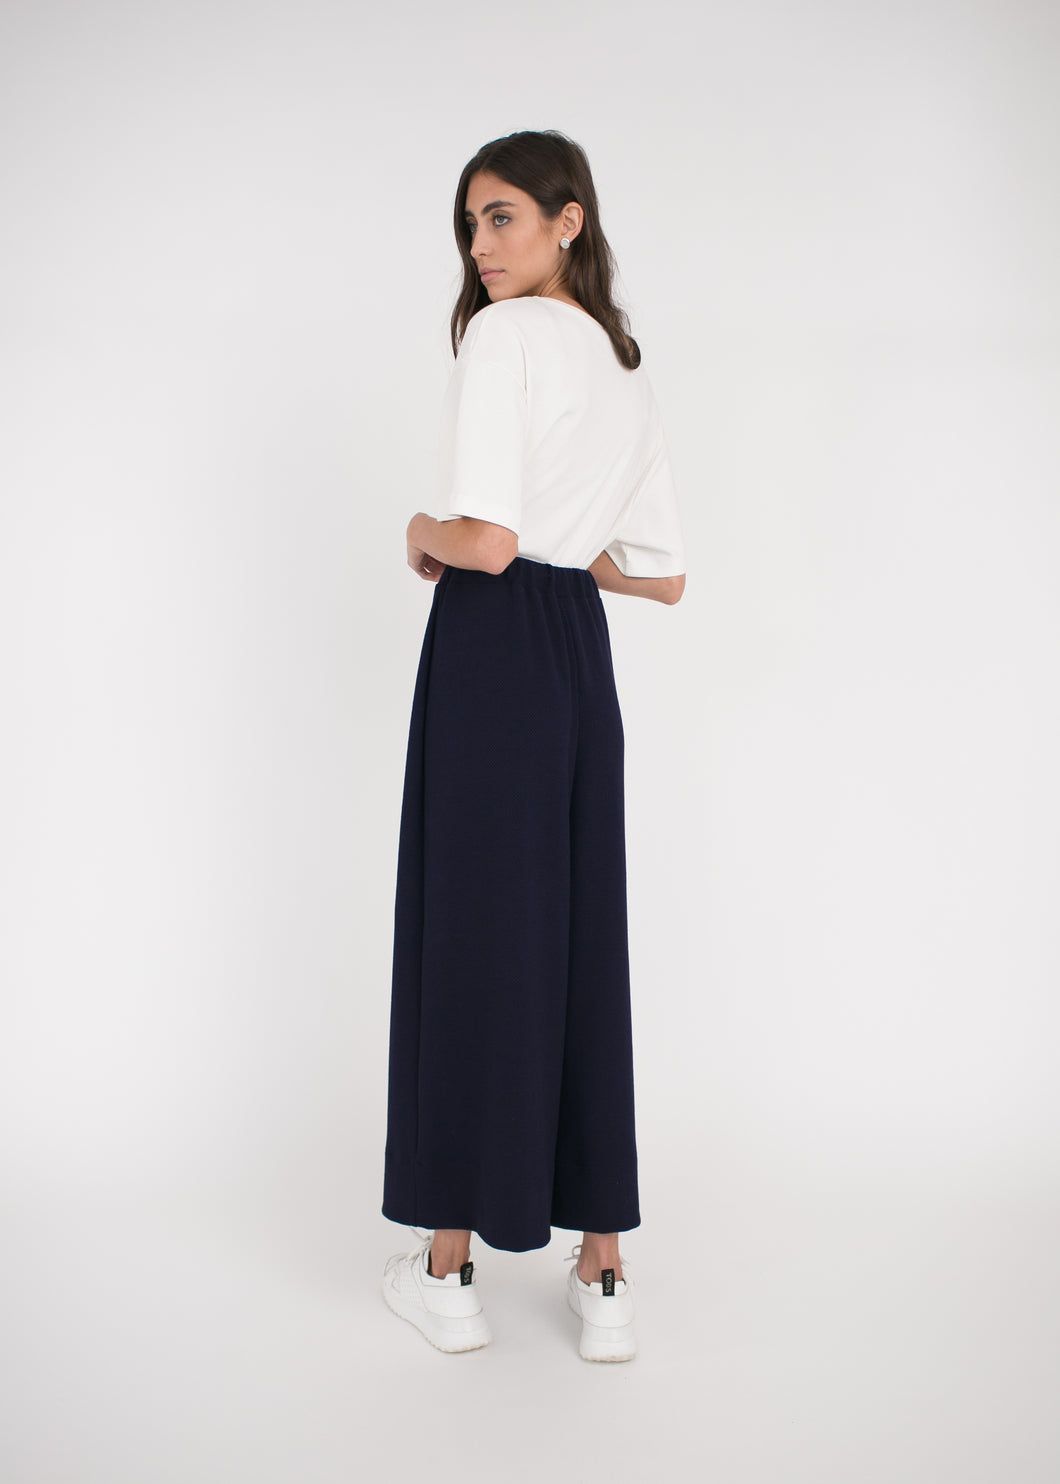 AURA Studios AW Collection Relaxed Pant Navy Spot